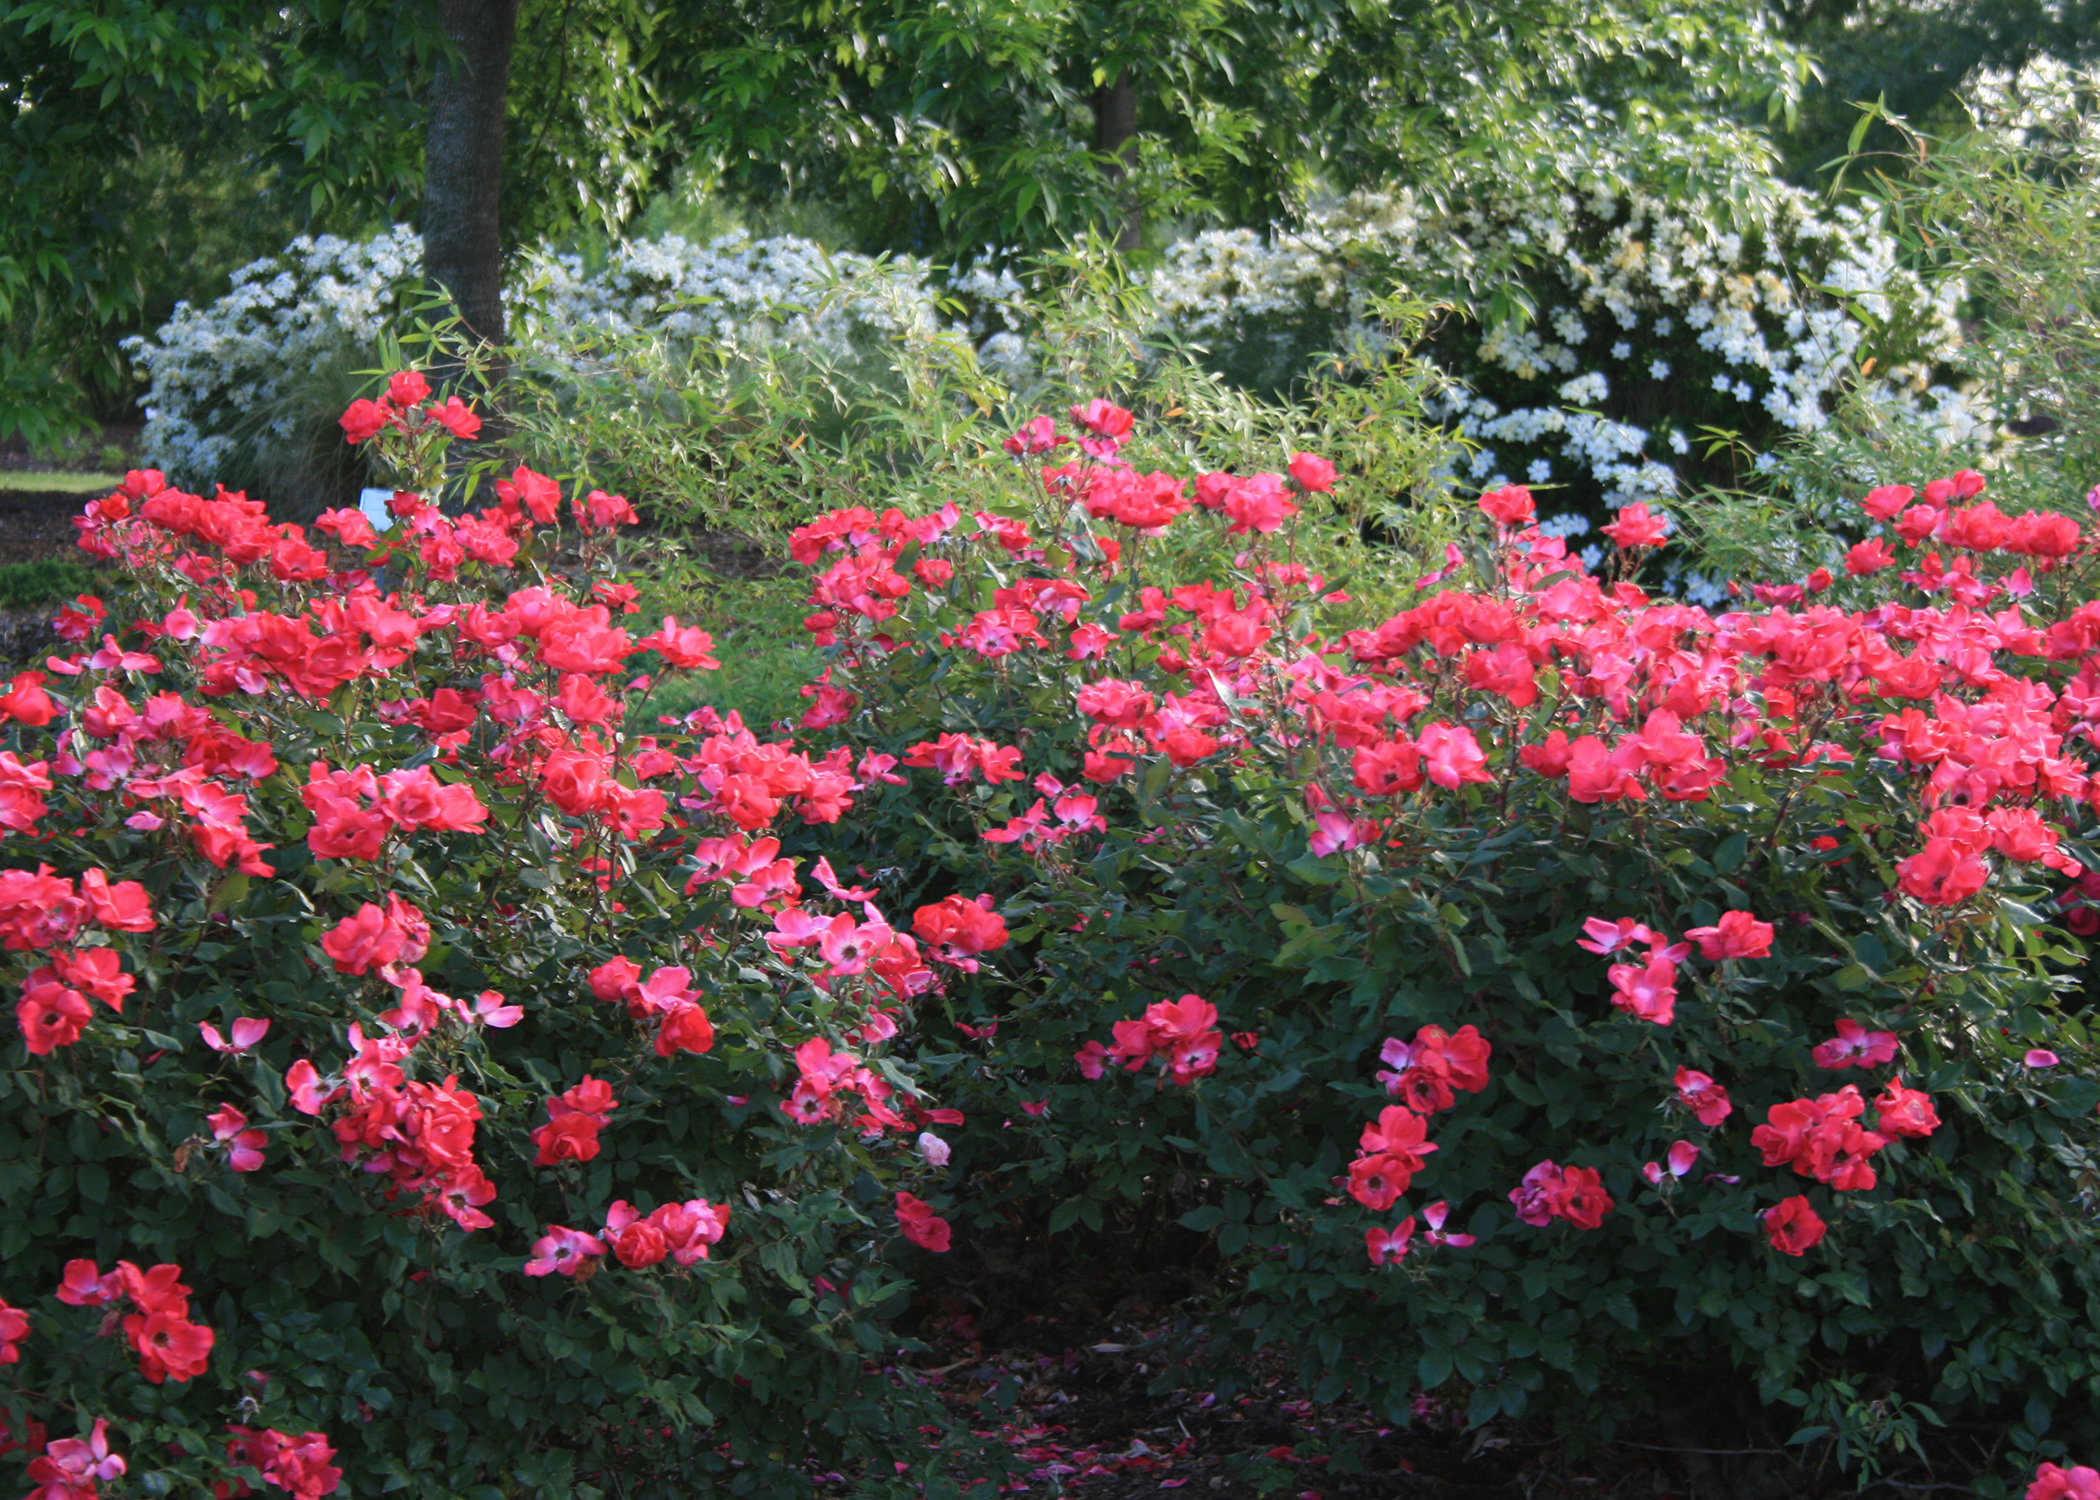 Prune Knockout Roses In The Spring To Keep Their Shape And Encourage Prolific Blooming That